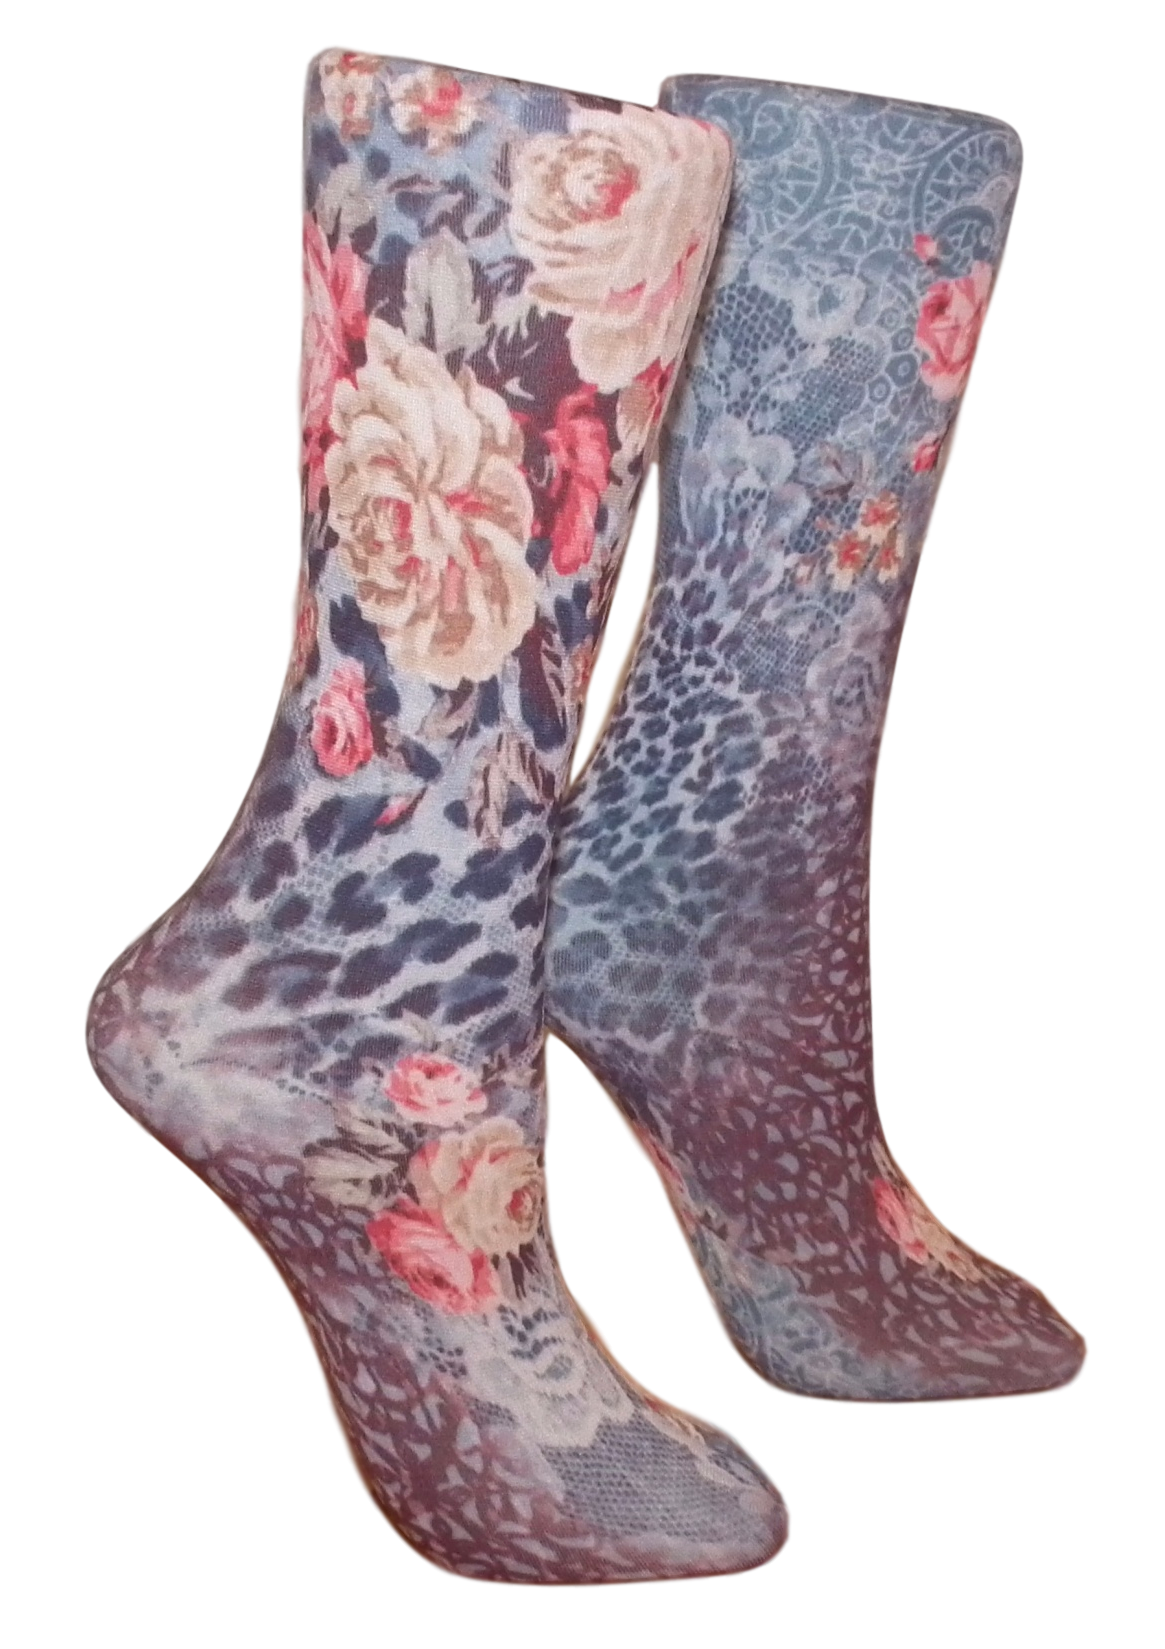 Soxtrot Knee High - Lace Meets Roses